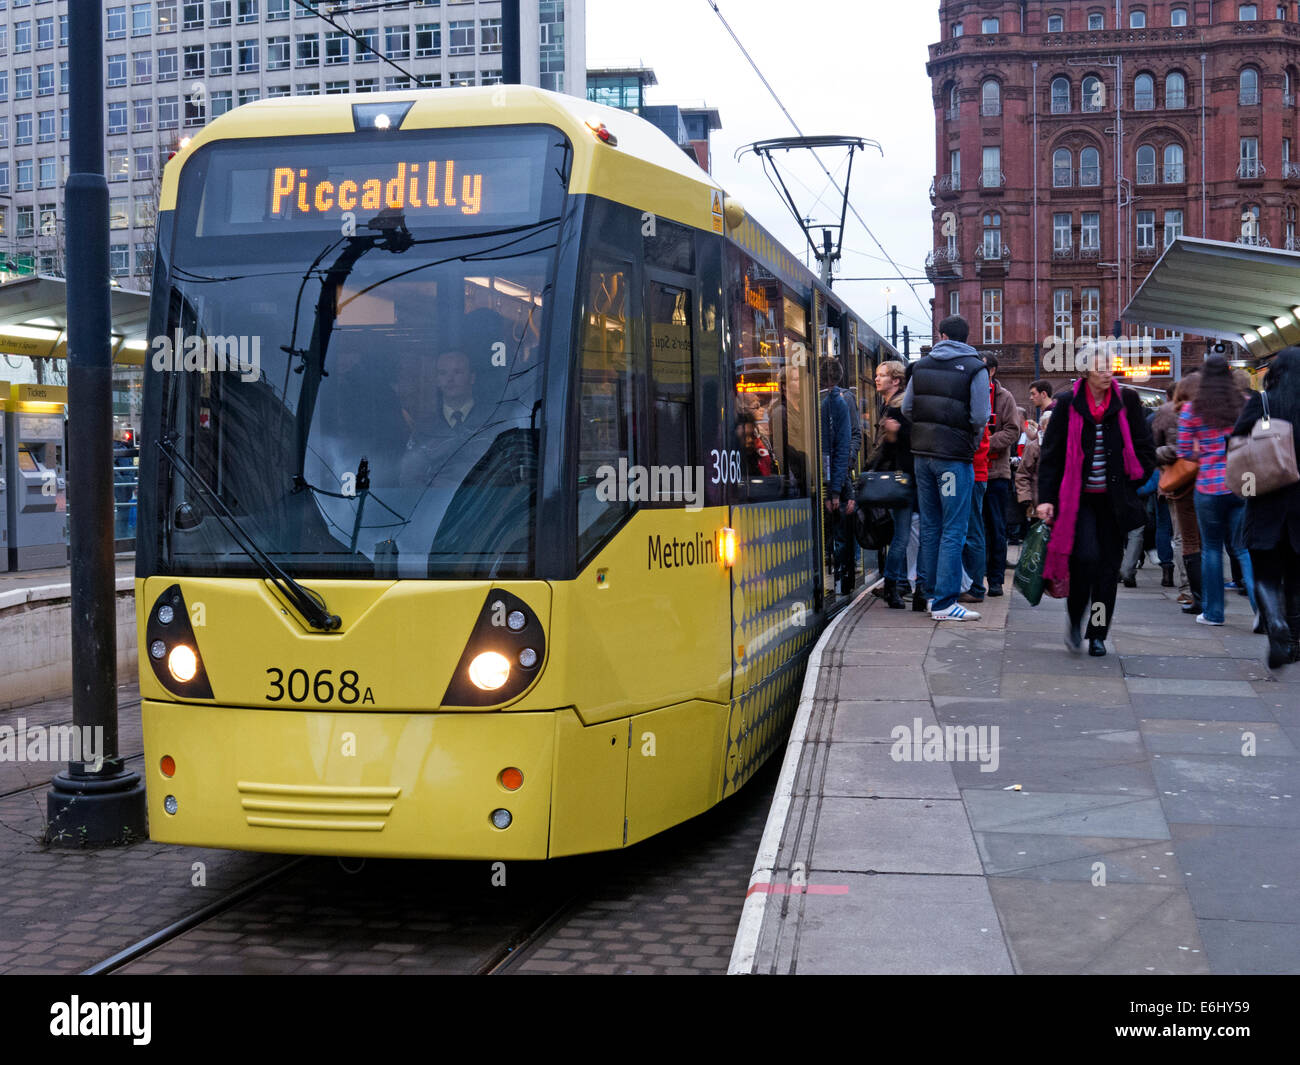 night,light,rail,system,in,Greater,Manchester,RAPT,six,lines,city,centre,Altrincham,Ashton-under-Lyne,Bury,Didsbury,Eccles,and,Rochdale,TFGM,TEGM,metrolink,integrated,and,efficient,system,of,public,transport,light,rail,street-running,street,running,tram,standard-gauge,track,standard,guage,gotonysmith system systems integrated commuter service Bombardier Flexity Swift M5000s,but,also,used,Ansaldo,Firema,T-68/T-68As,T-68/T-68A,M5000,FlexitySwift,LRVs,LRV,aquamarine,identity,colour,colouring,3a,3b,2CC,phase,phases,tram-train,technology.,GMPTE,SELNEC,PTE,Passenger,Transport,Executive,British,rail,East,Lancashire,Railway,(Bury-to-Victoria),and,Manchester,South,Junction,and,Altrincham,Railway,network,GMA,Transport,and,Works,Act,1992,Salford,Quays,eccles,line,lines,European,Regional,Development,Fund,little,mini,bang,TMS,thales,3a,services,mediacityUK,mediacity,UK,serco,Stagecoach,dev,Peter,cushing,Fitch,RS,and,Design,Triangle,Hemisphere,Design,and,Marketing,Consultancy,Peter,Saville,Dalton Maag and Design Triangle M5000 systems operator system